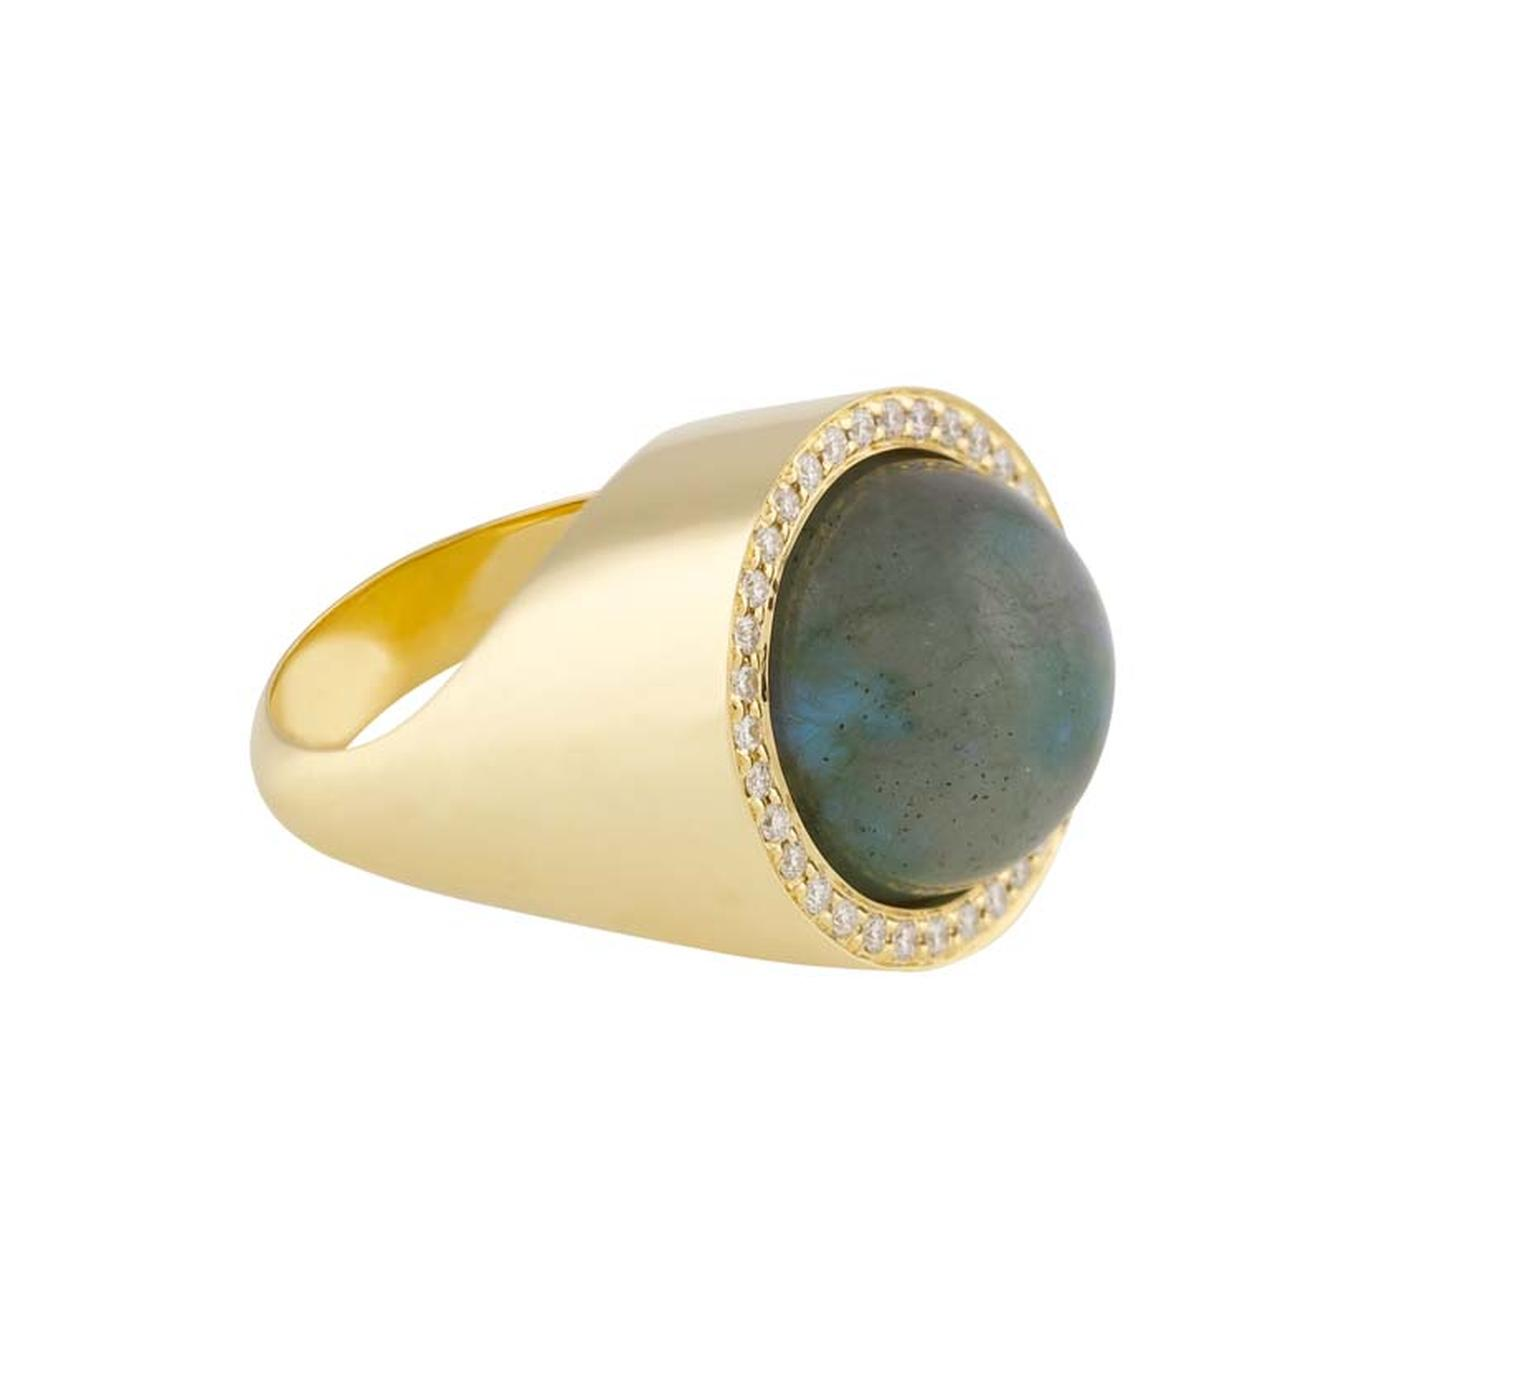 Noor Fares Aurora ring featuring a 20.15ct labradorite set in a rotating yellow gold setting with diamonds.